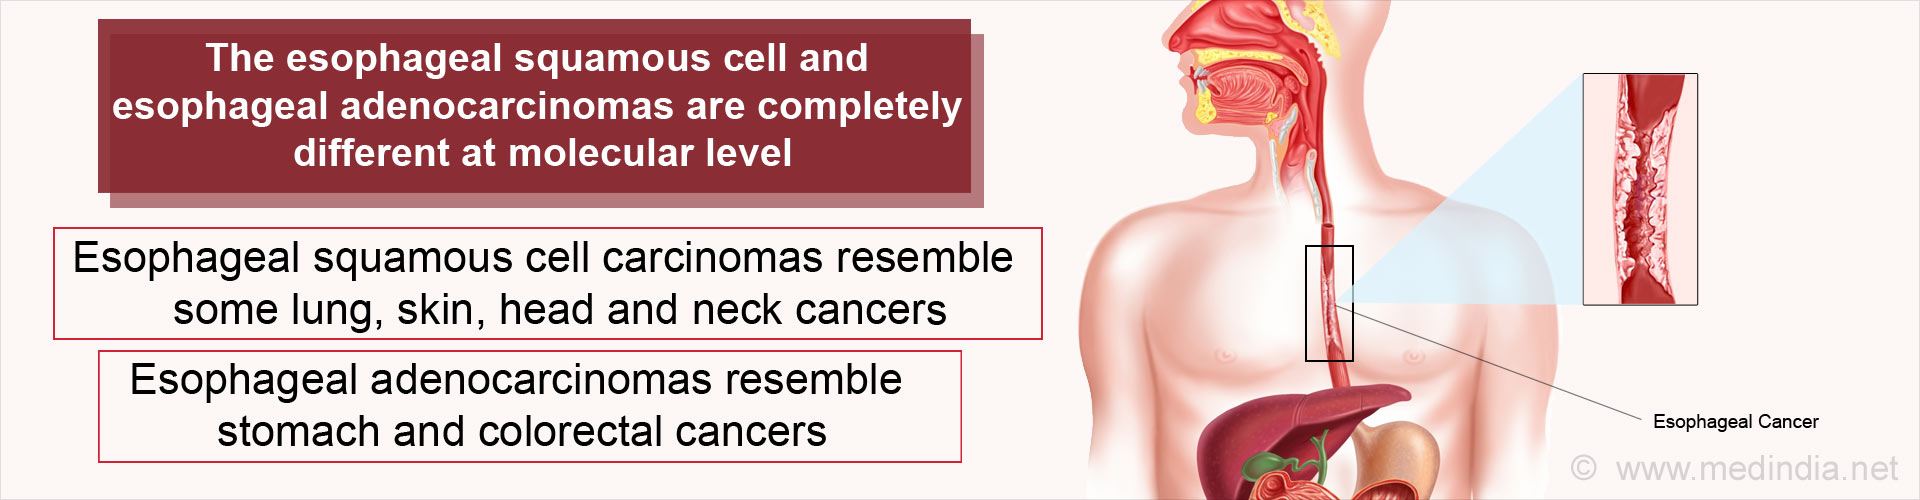 Two New Sub-types of Esophageal Cancer Identified